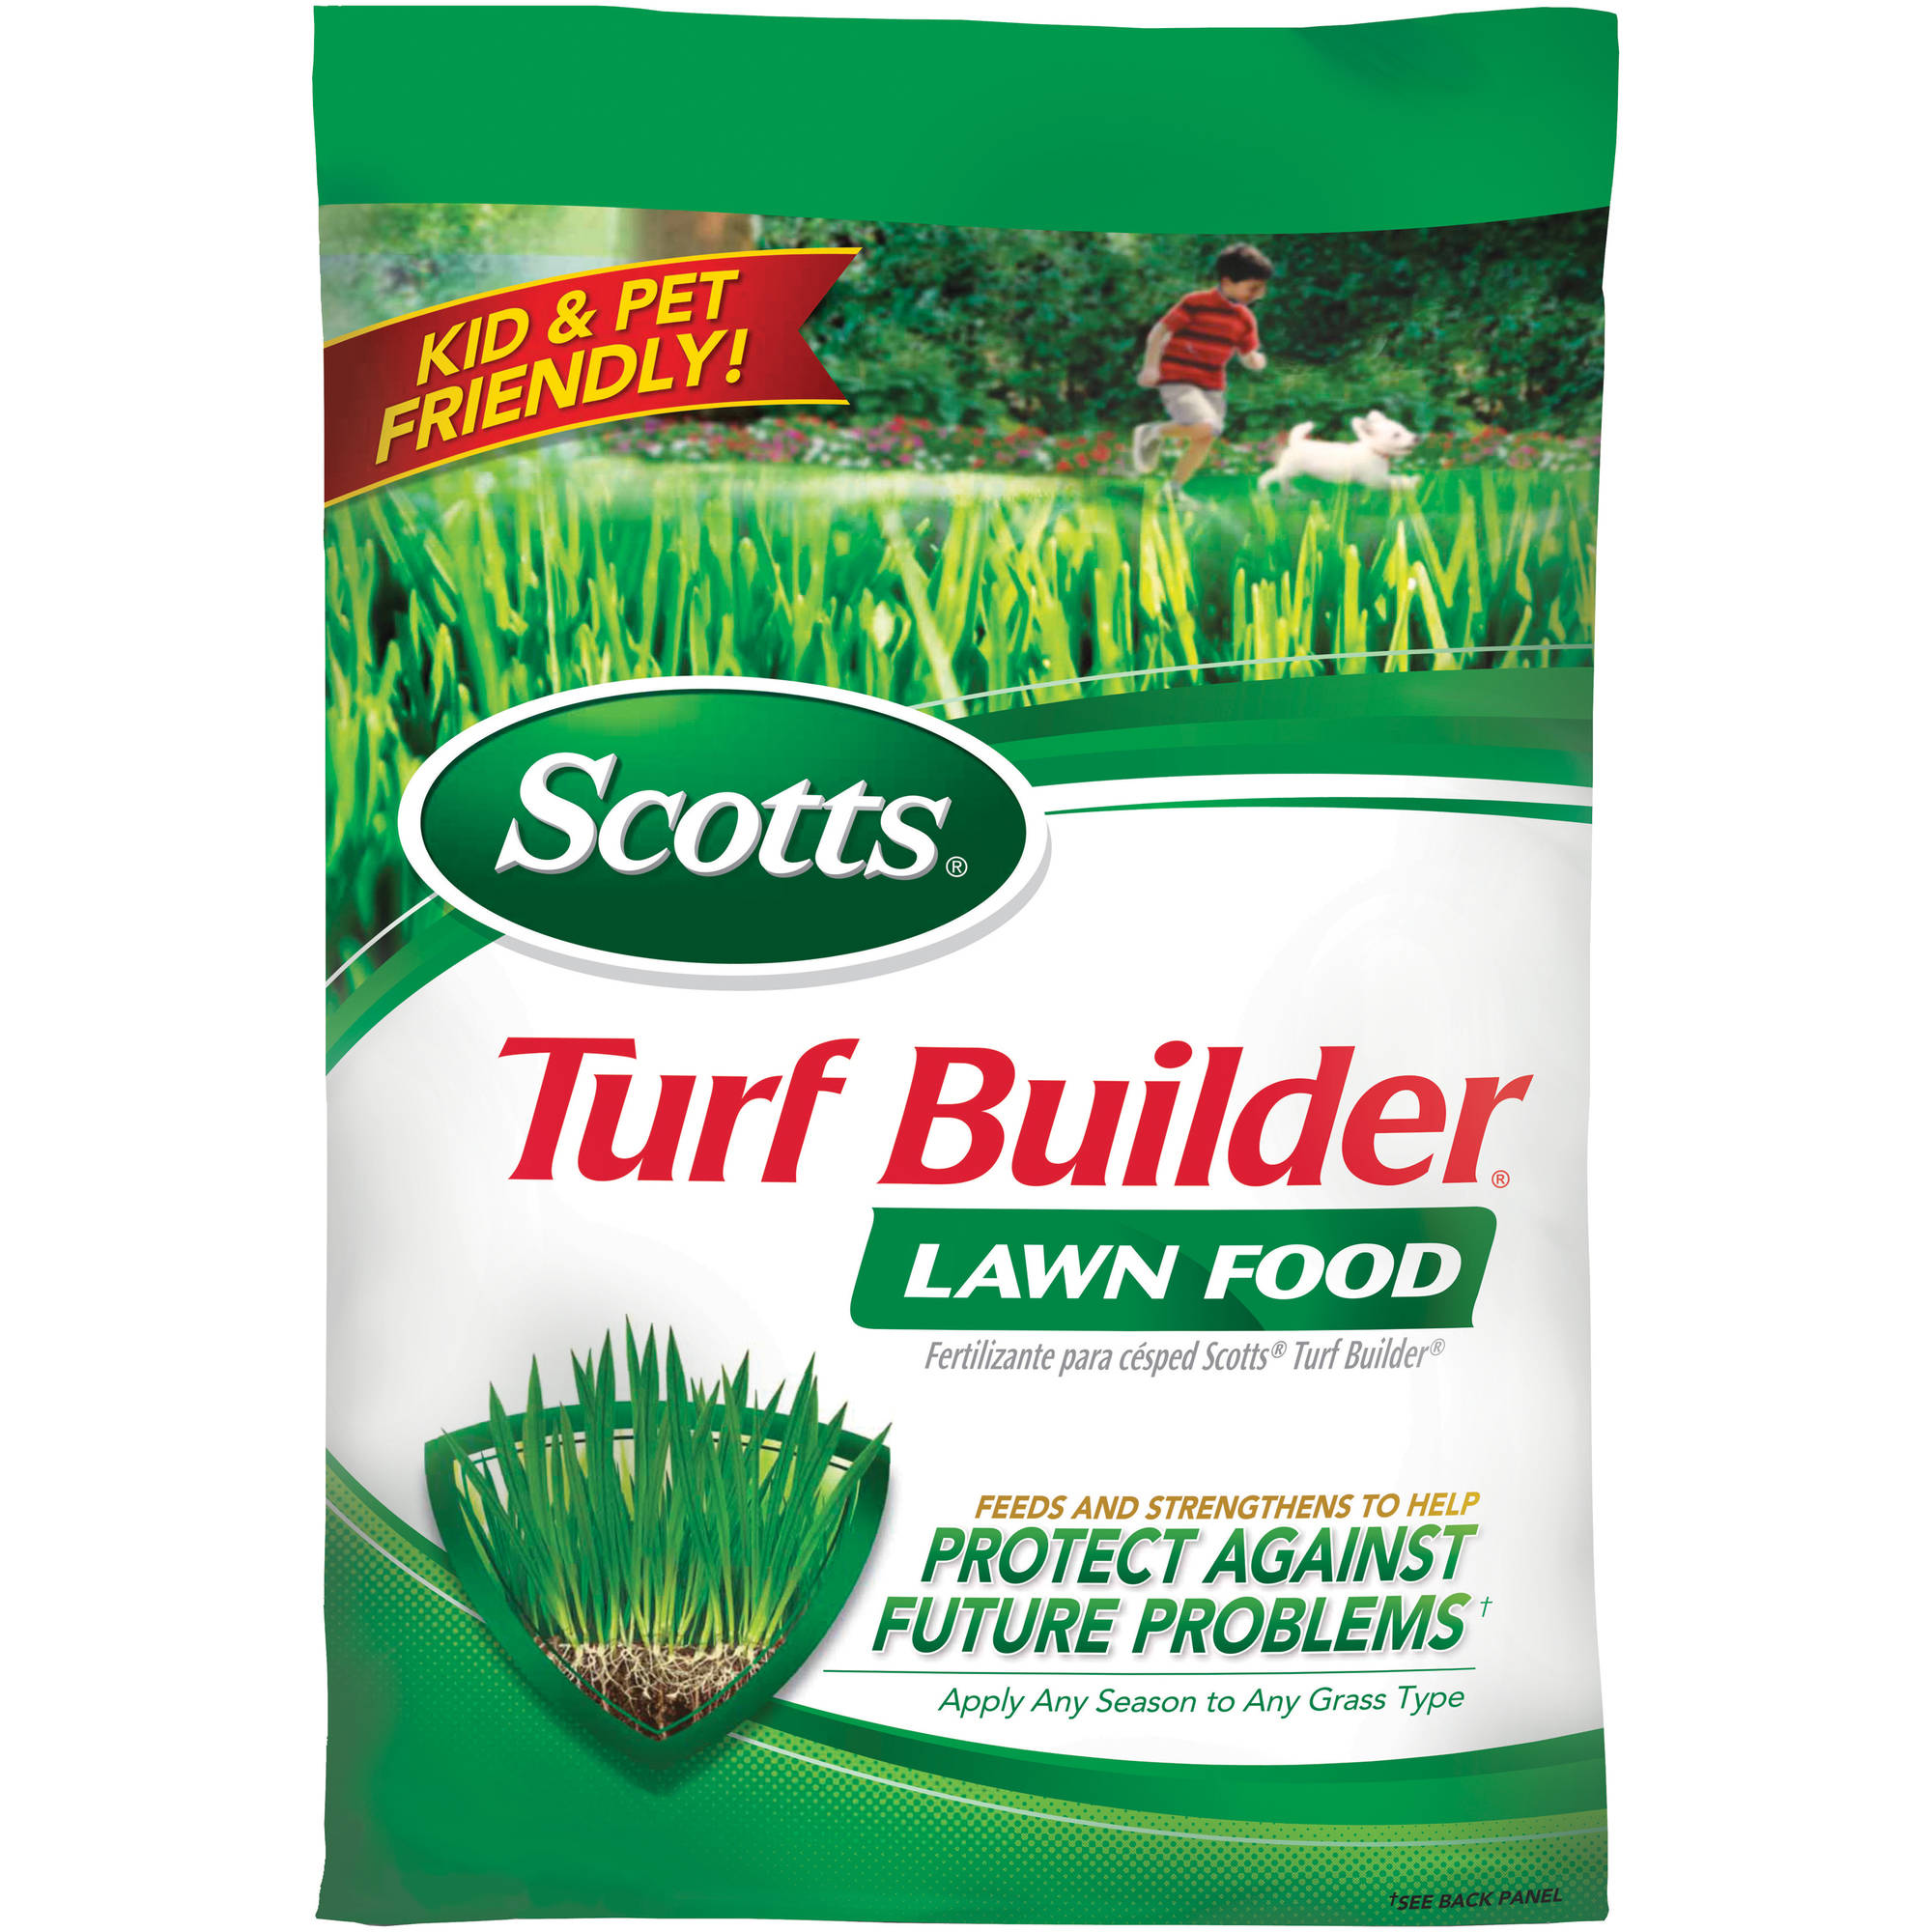 Scotts Turf Builder Lawn Food, 5,000 sq ft